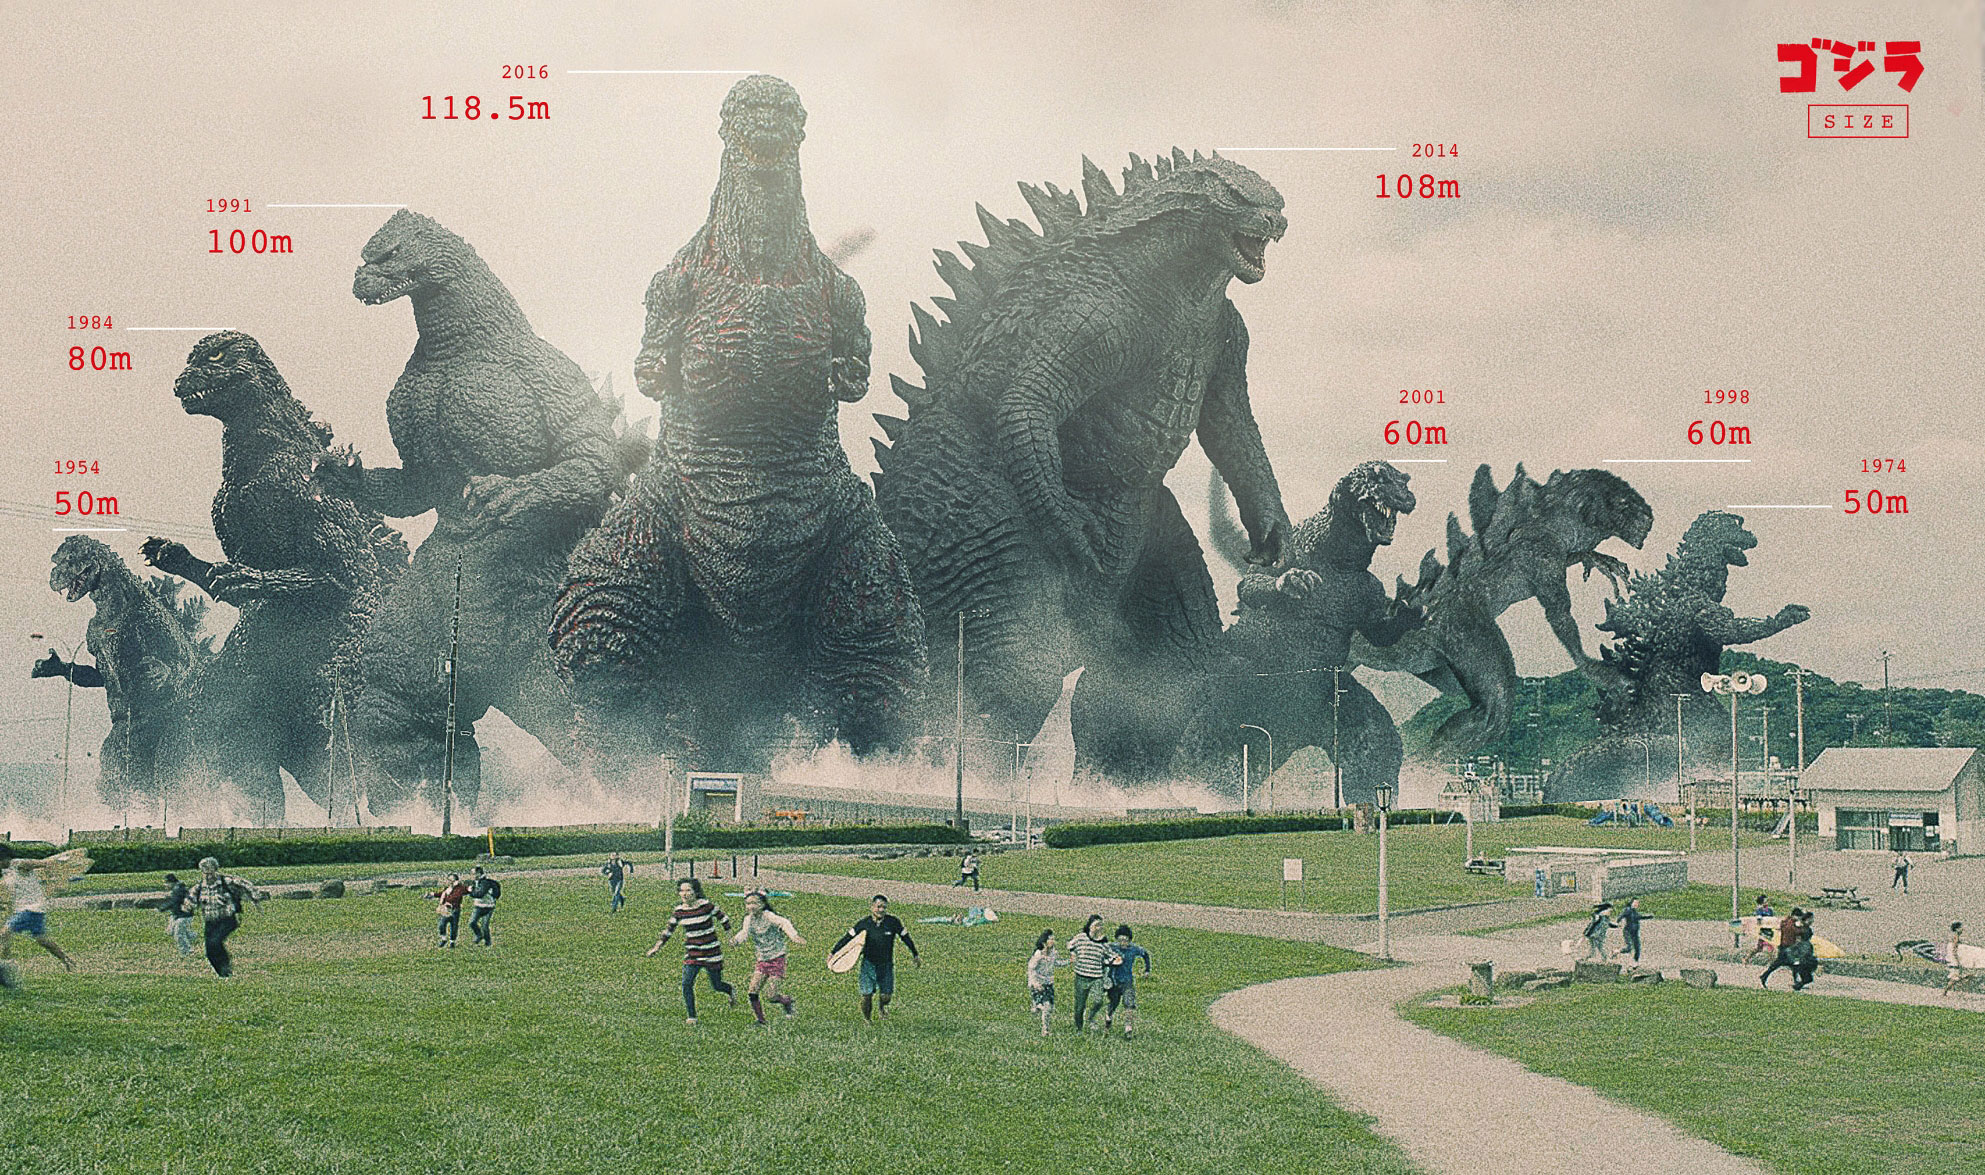 Godzilla size and height comparison